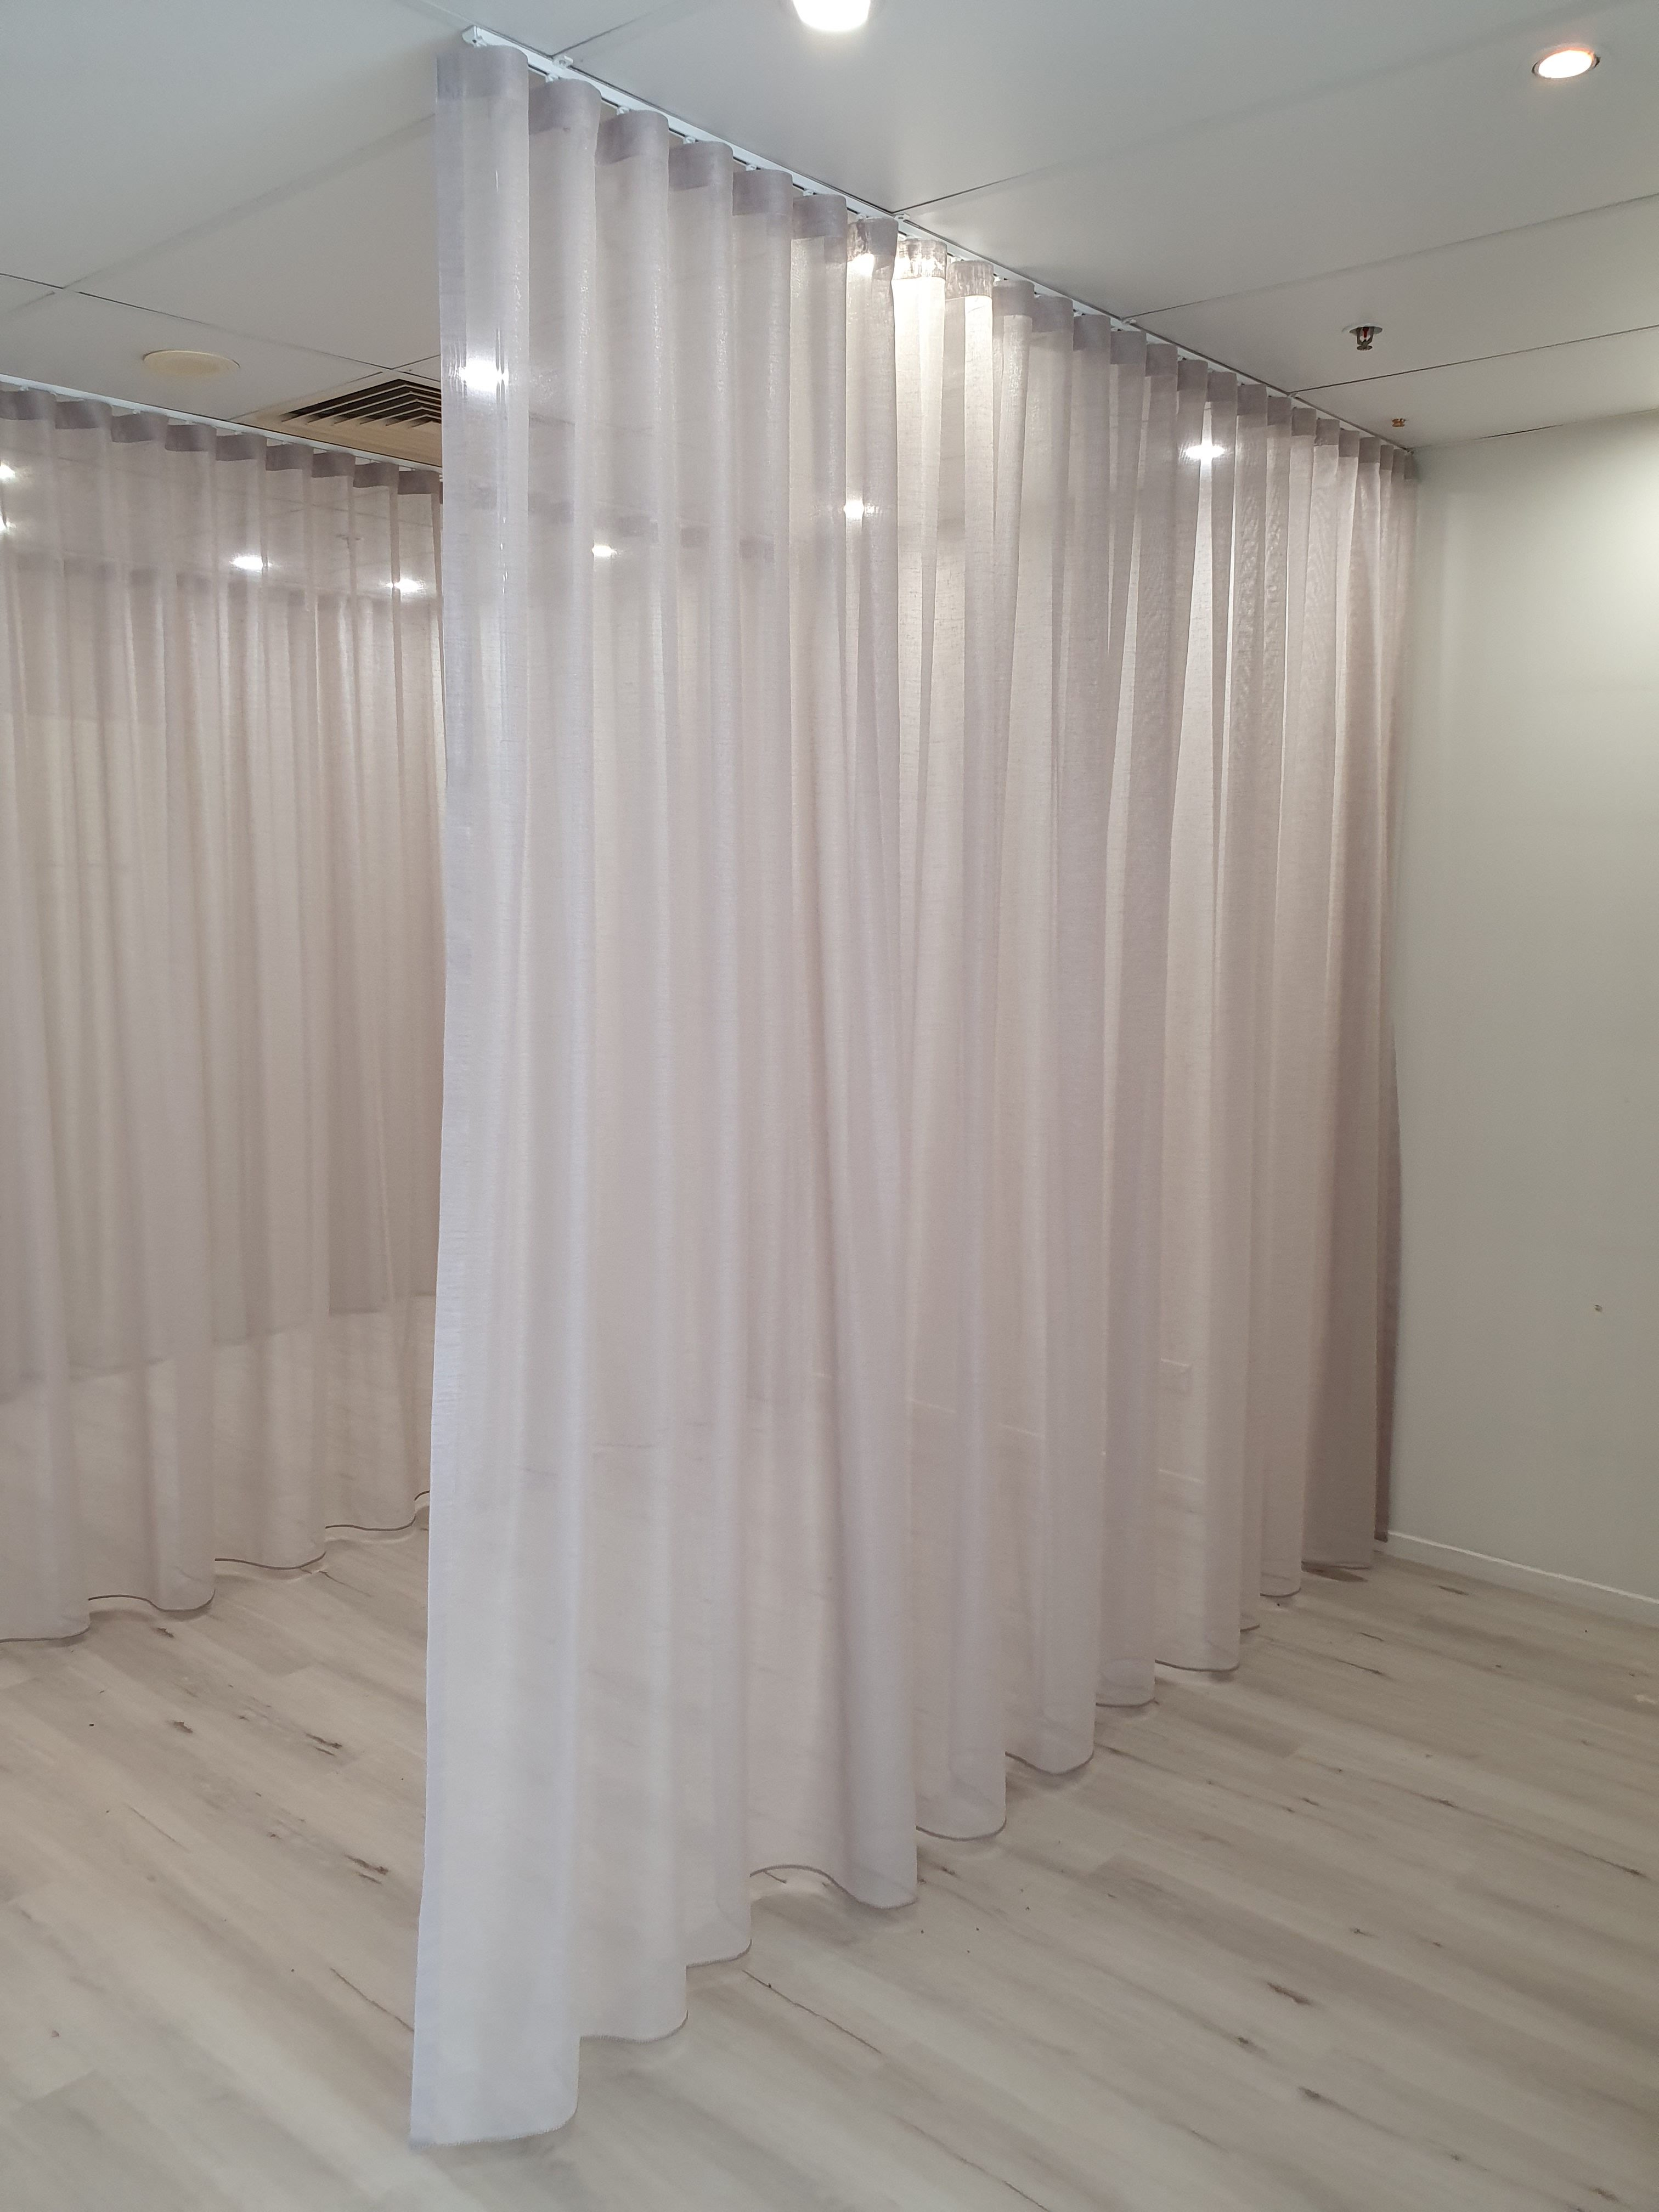 Shimmery S-Wave sheers for a commercial fit-out ceiling to floor